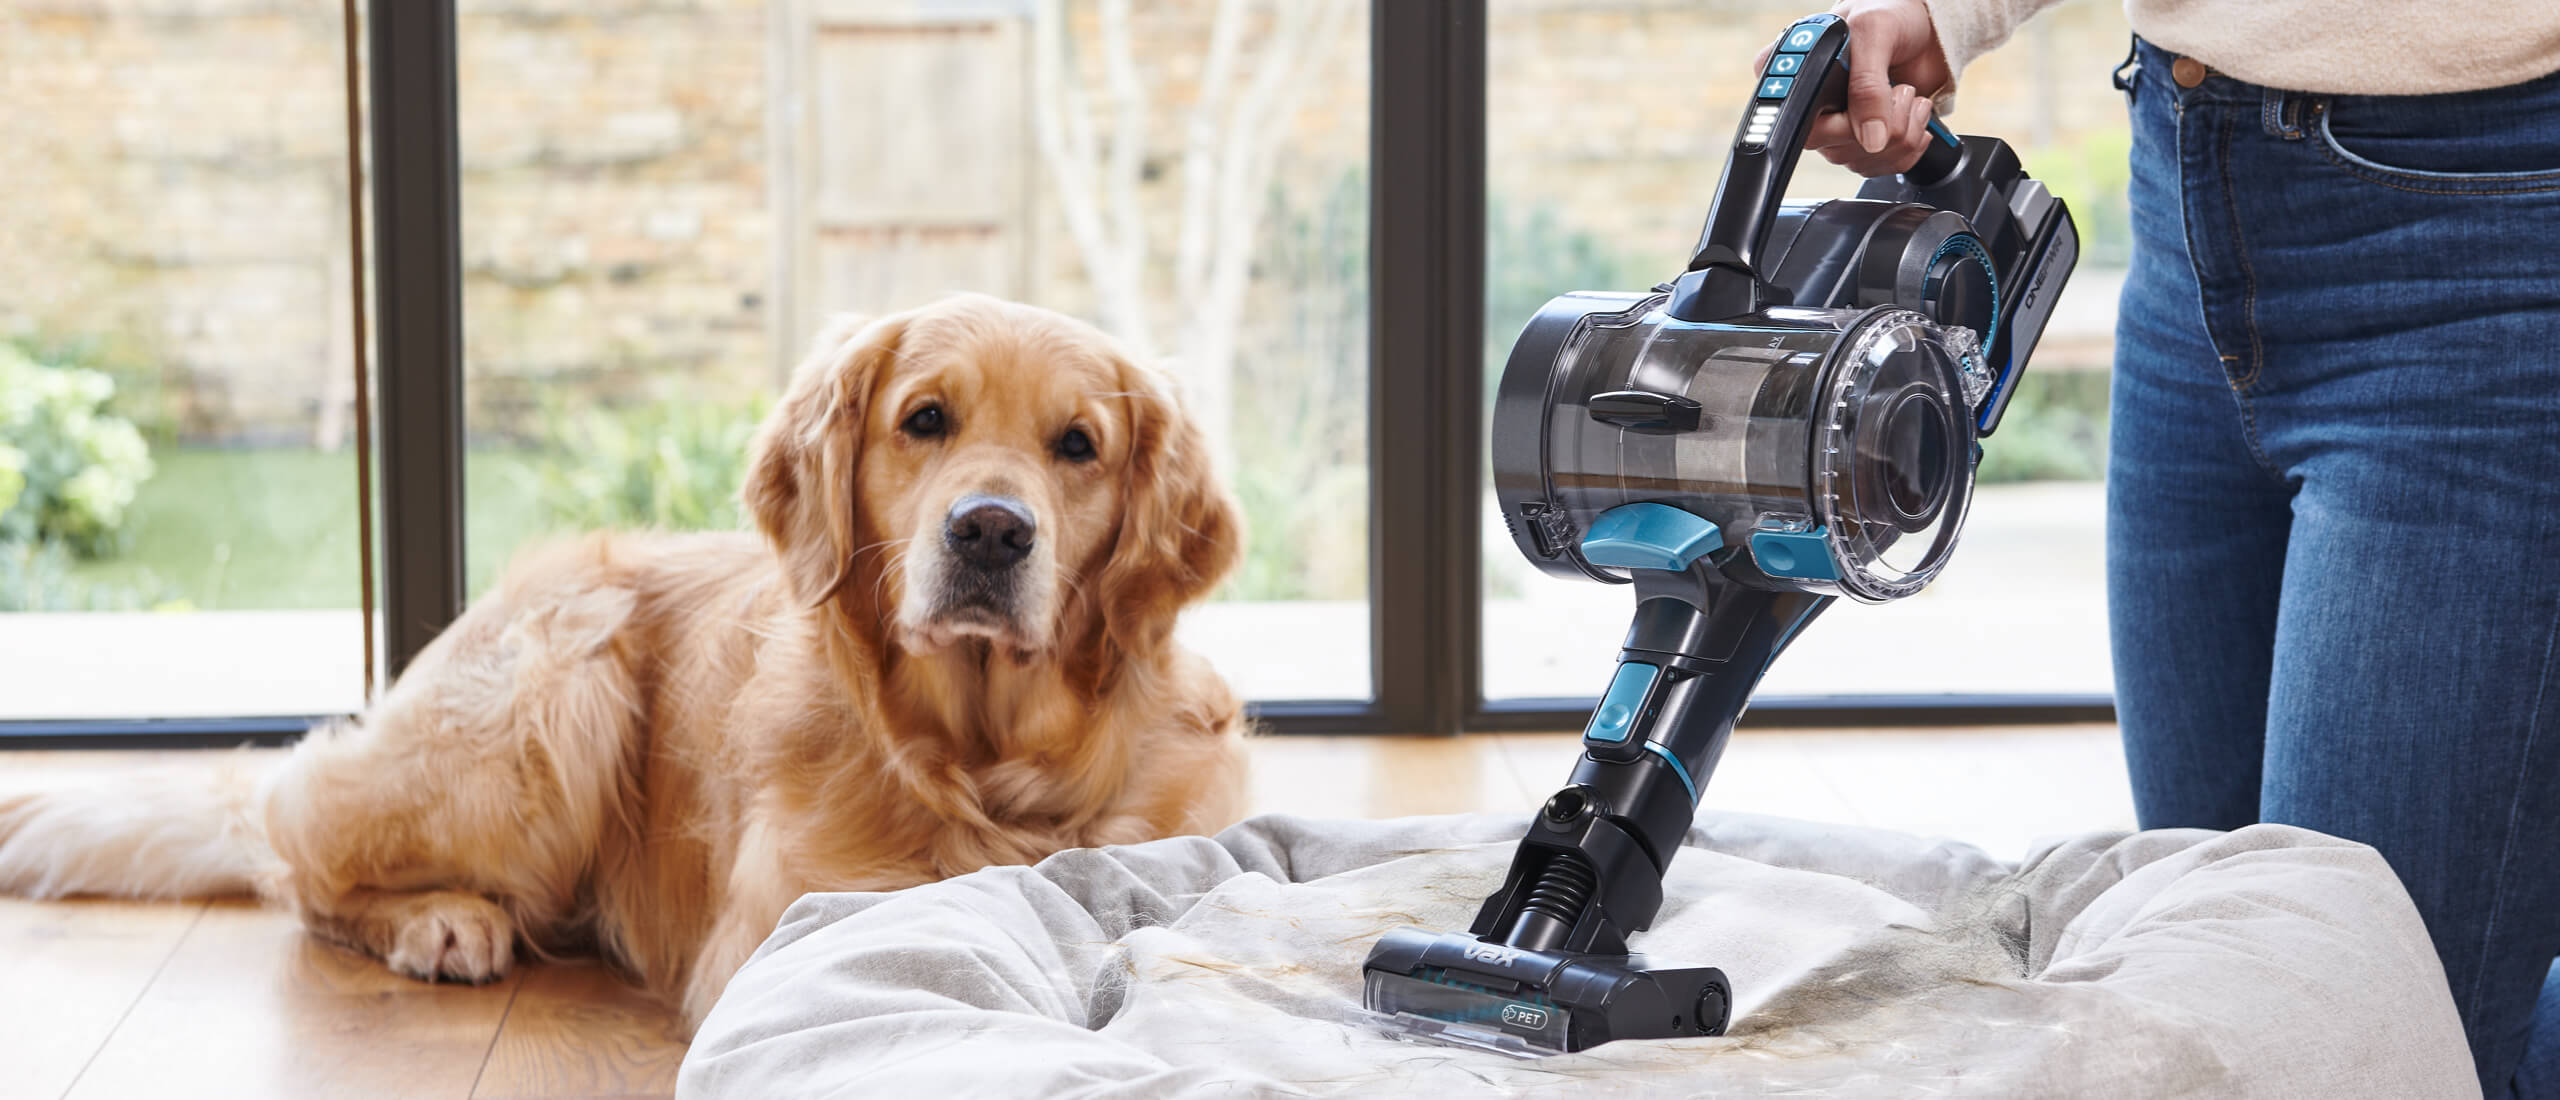 Vax ONEPWR Blade 4 Pet Cordless Vacuum Cleaner